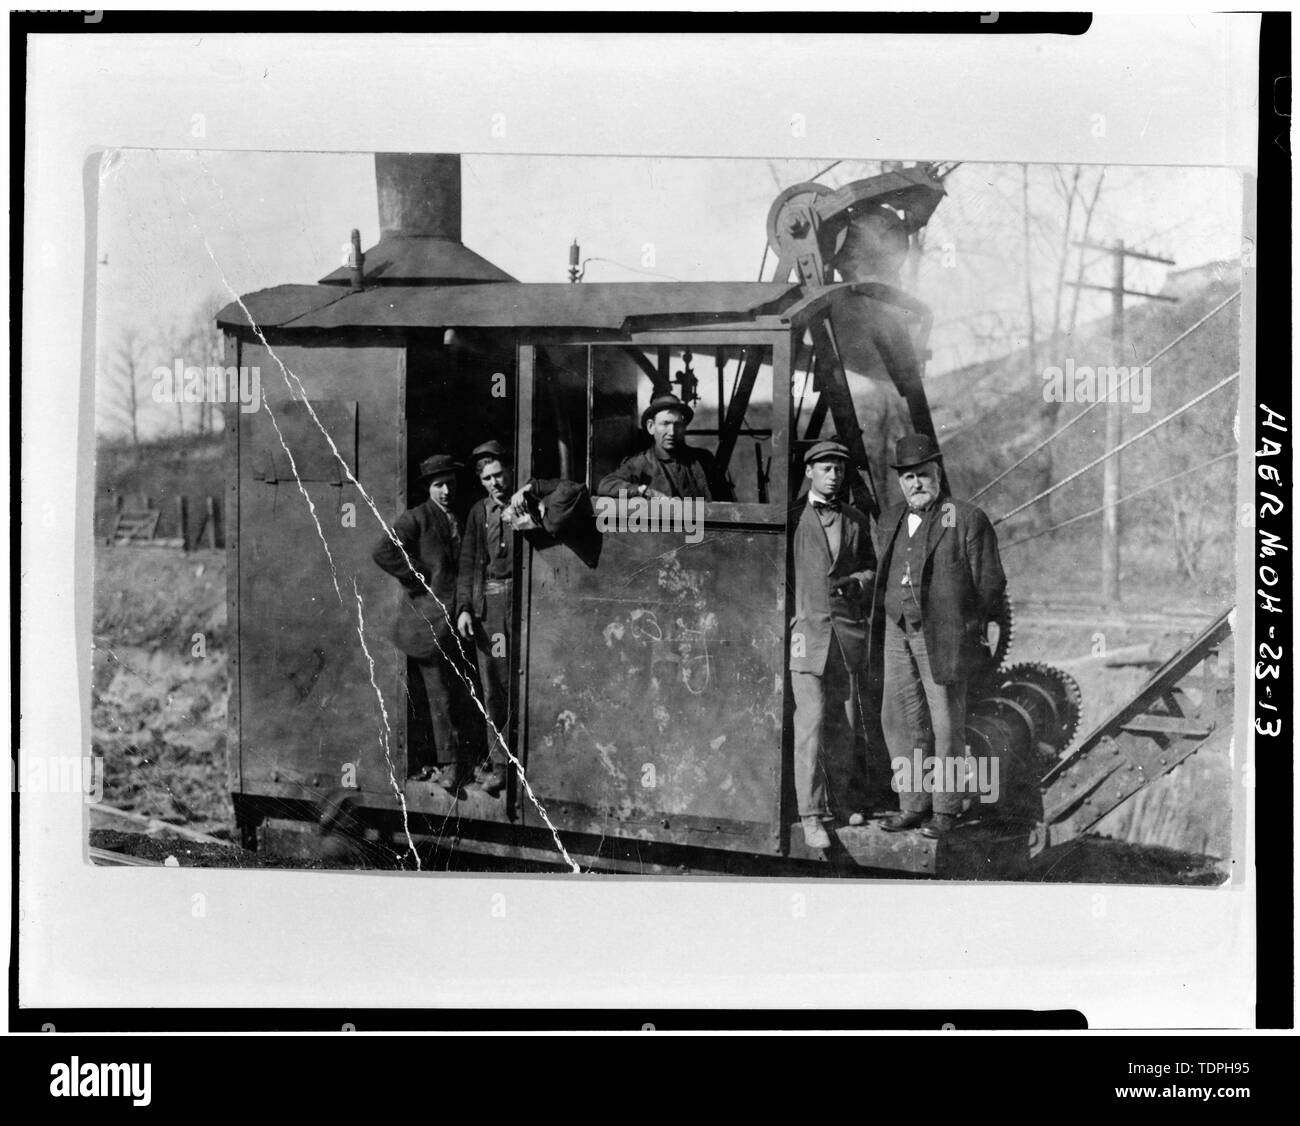 1910 STEAM-POWERED CONSTRUCTION EQUIPMENT (From the private collection of Mrs. Alice S. Landor, Canton, OH) - Third Street Southeast Bridge, Spanning Nimishillen Creek, Canton, Stark County, OH - Stock Image